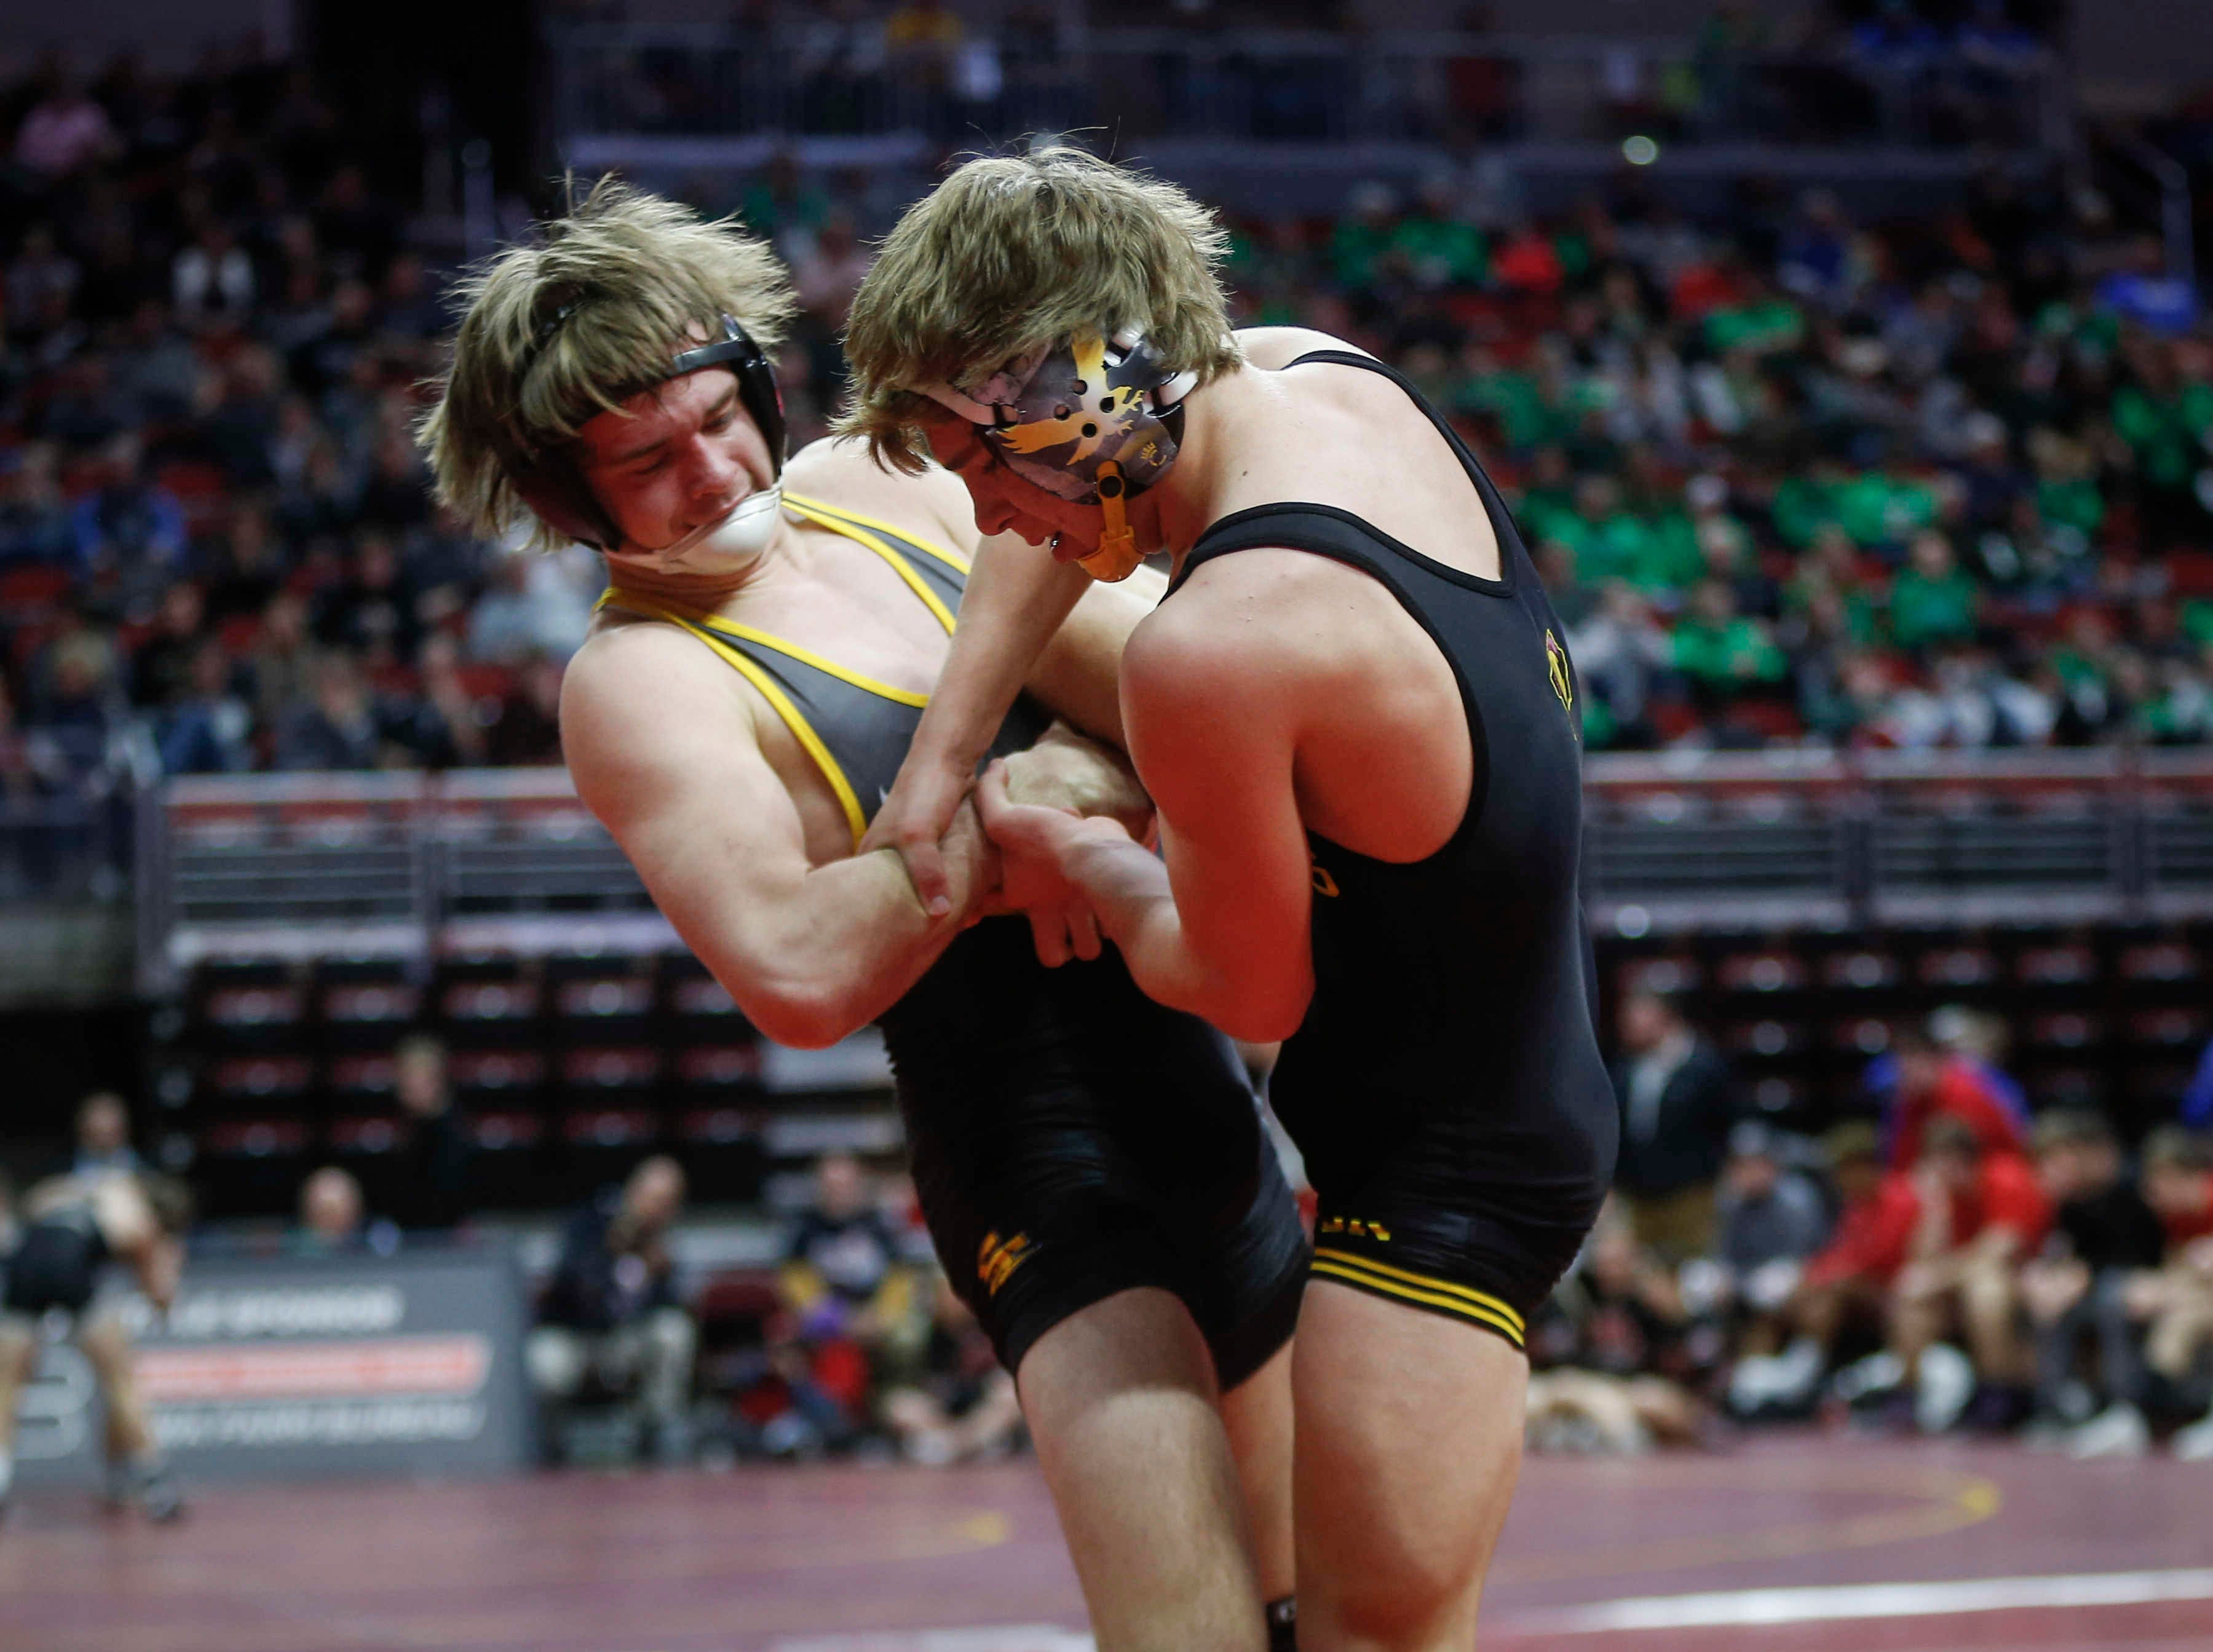 Southeast Polk's Camden Baarda, left, controls Waverly-Shell Rock's Cayden Langreck at 145 pounds during the 2019 Iowa high school dual wrestling state tournament on Wednesday, Feb. 13, 2019, at Wells Fargo Arena in Des Moines.